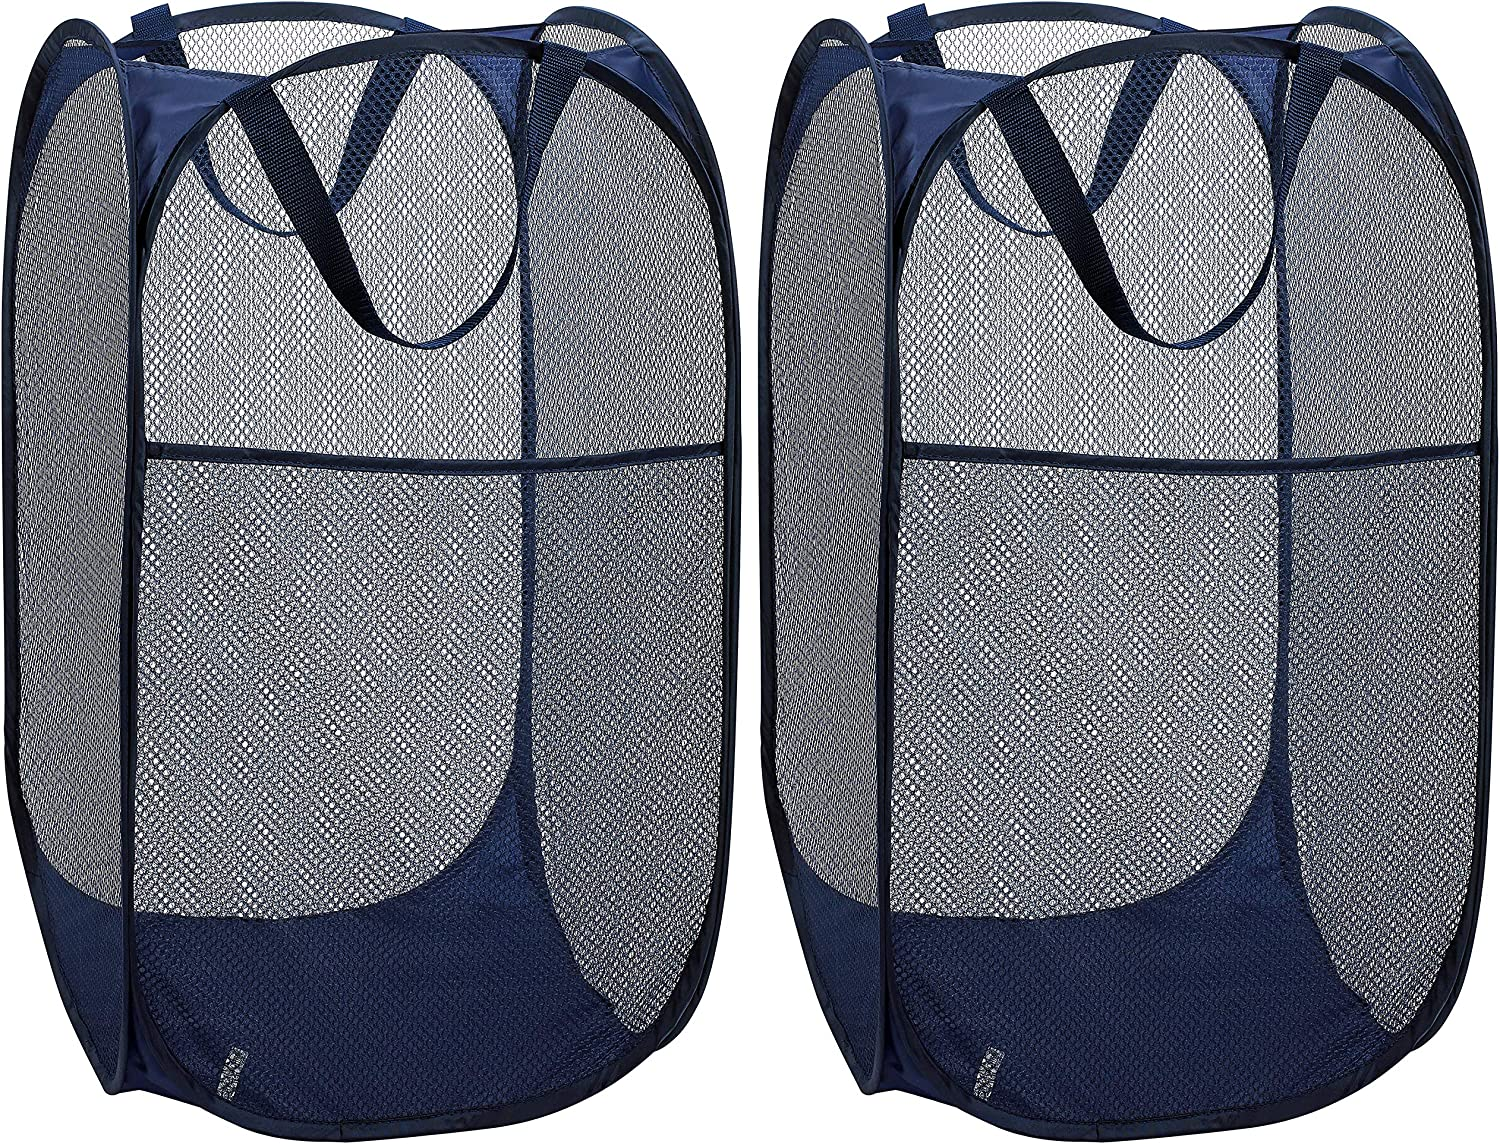 Mesh Popup Laundry Hamper - Portable, Durable Handles, Collapsible for Storage and Easy to Open. Folding Pop-Up Clothes Hampers are Great for The Kids Room, College Dorm or Travel. (Blue | Set of 2)